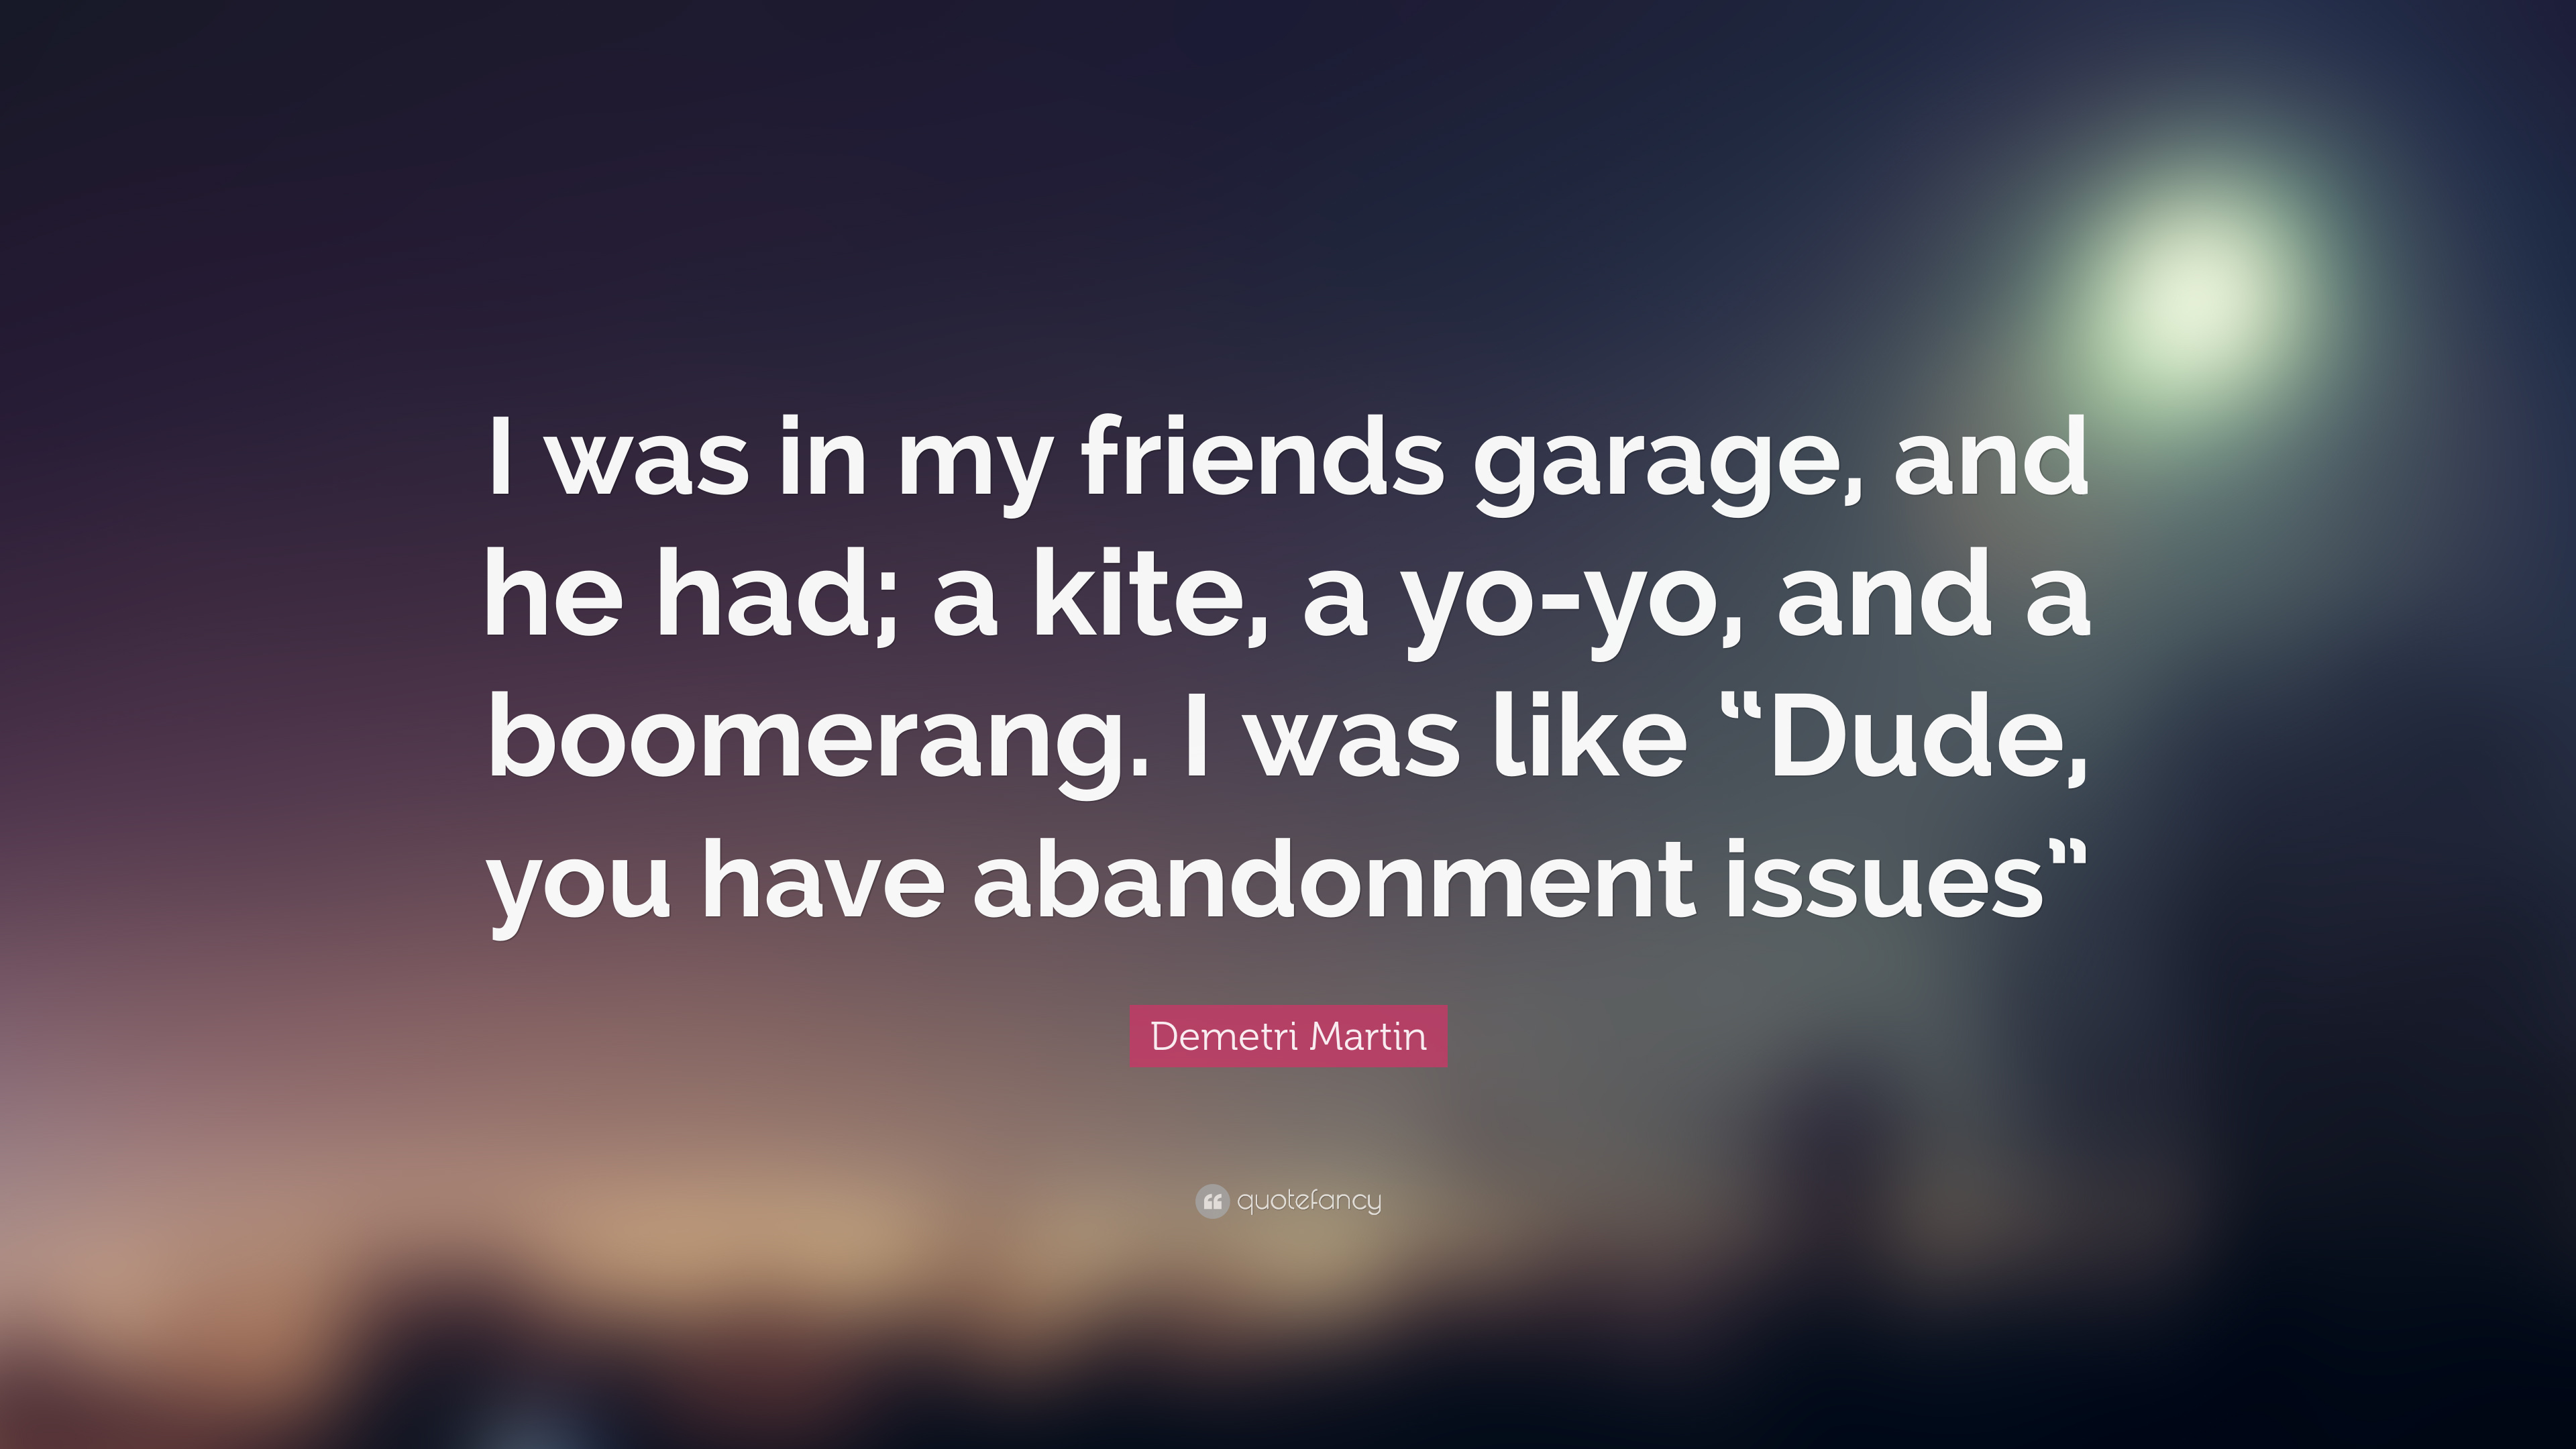 Demetri Martin Quote I Was In My Friends Garage And He Had A Kite A Yo Yo And A Boomerang I Was Like Dude You Have Abandonment Issues 7 Wallpapers Quotefancy